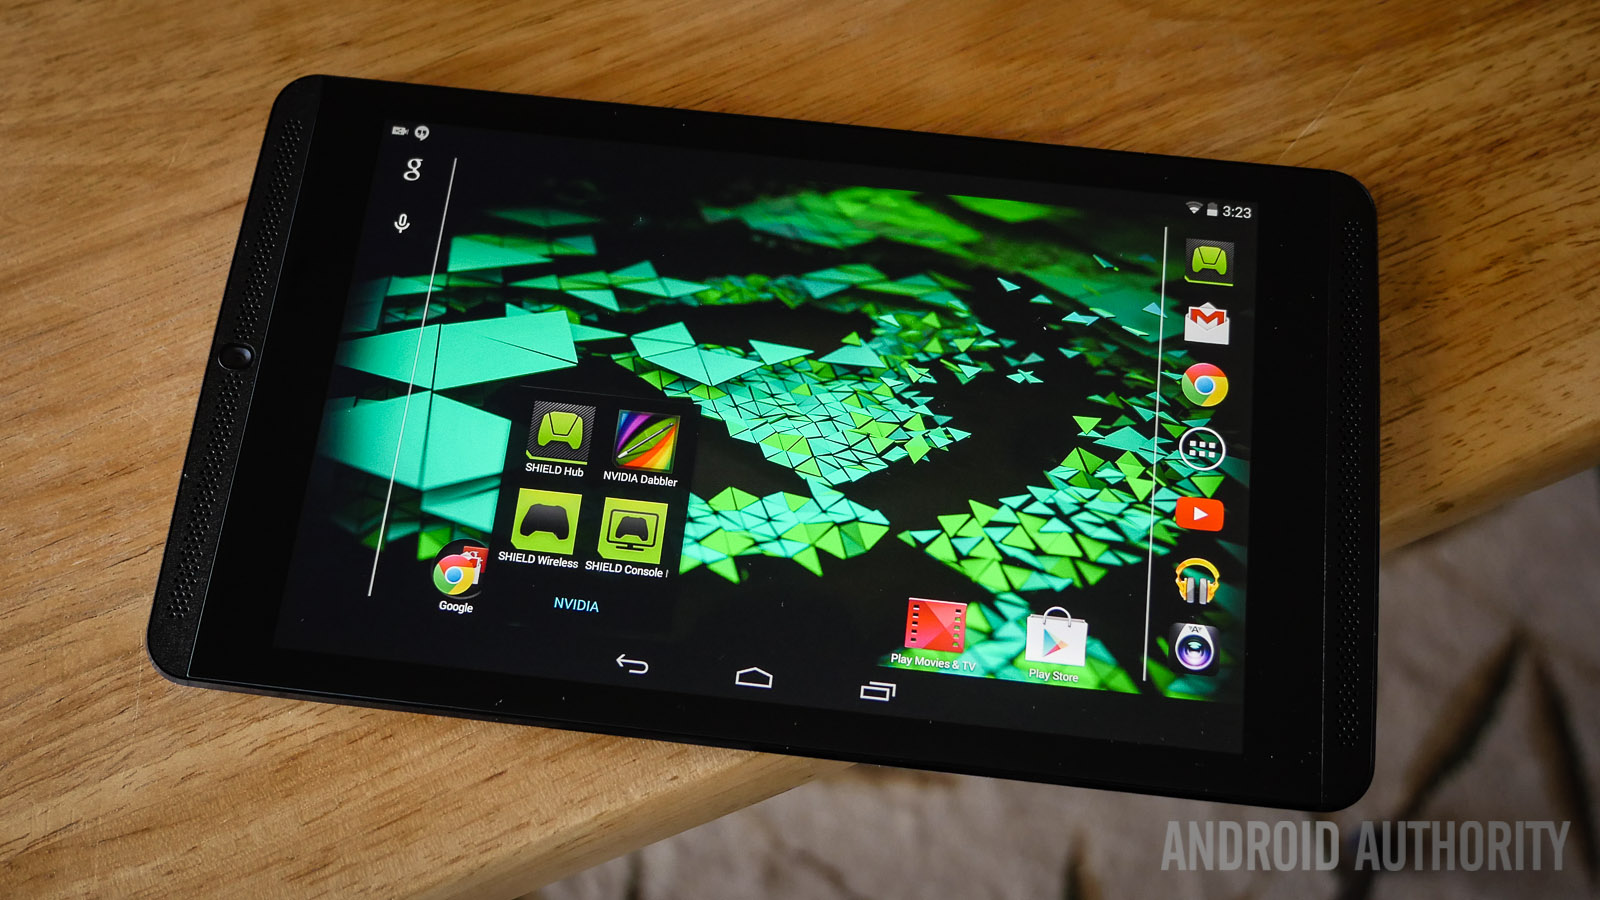 Küchenplaner Tablet Android 15 Best Android Tablet Games - Android Authority